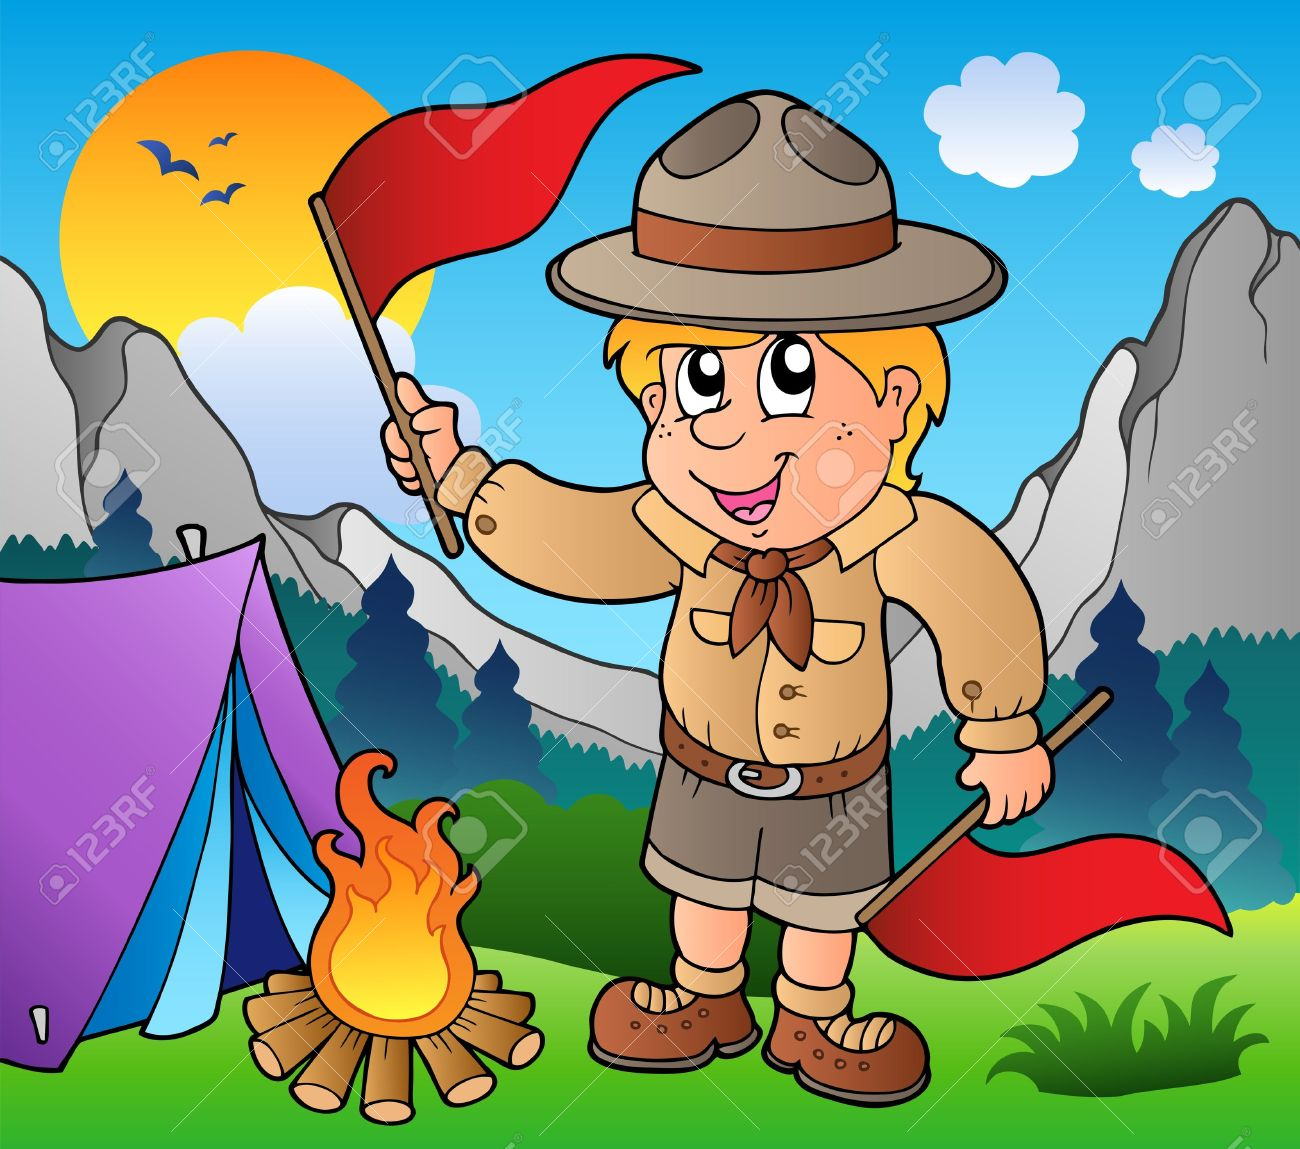 cub scout clipart camping